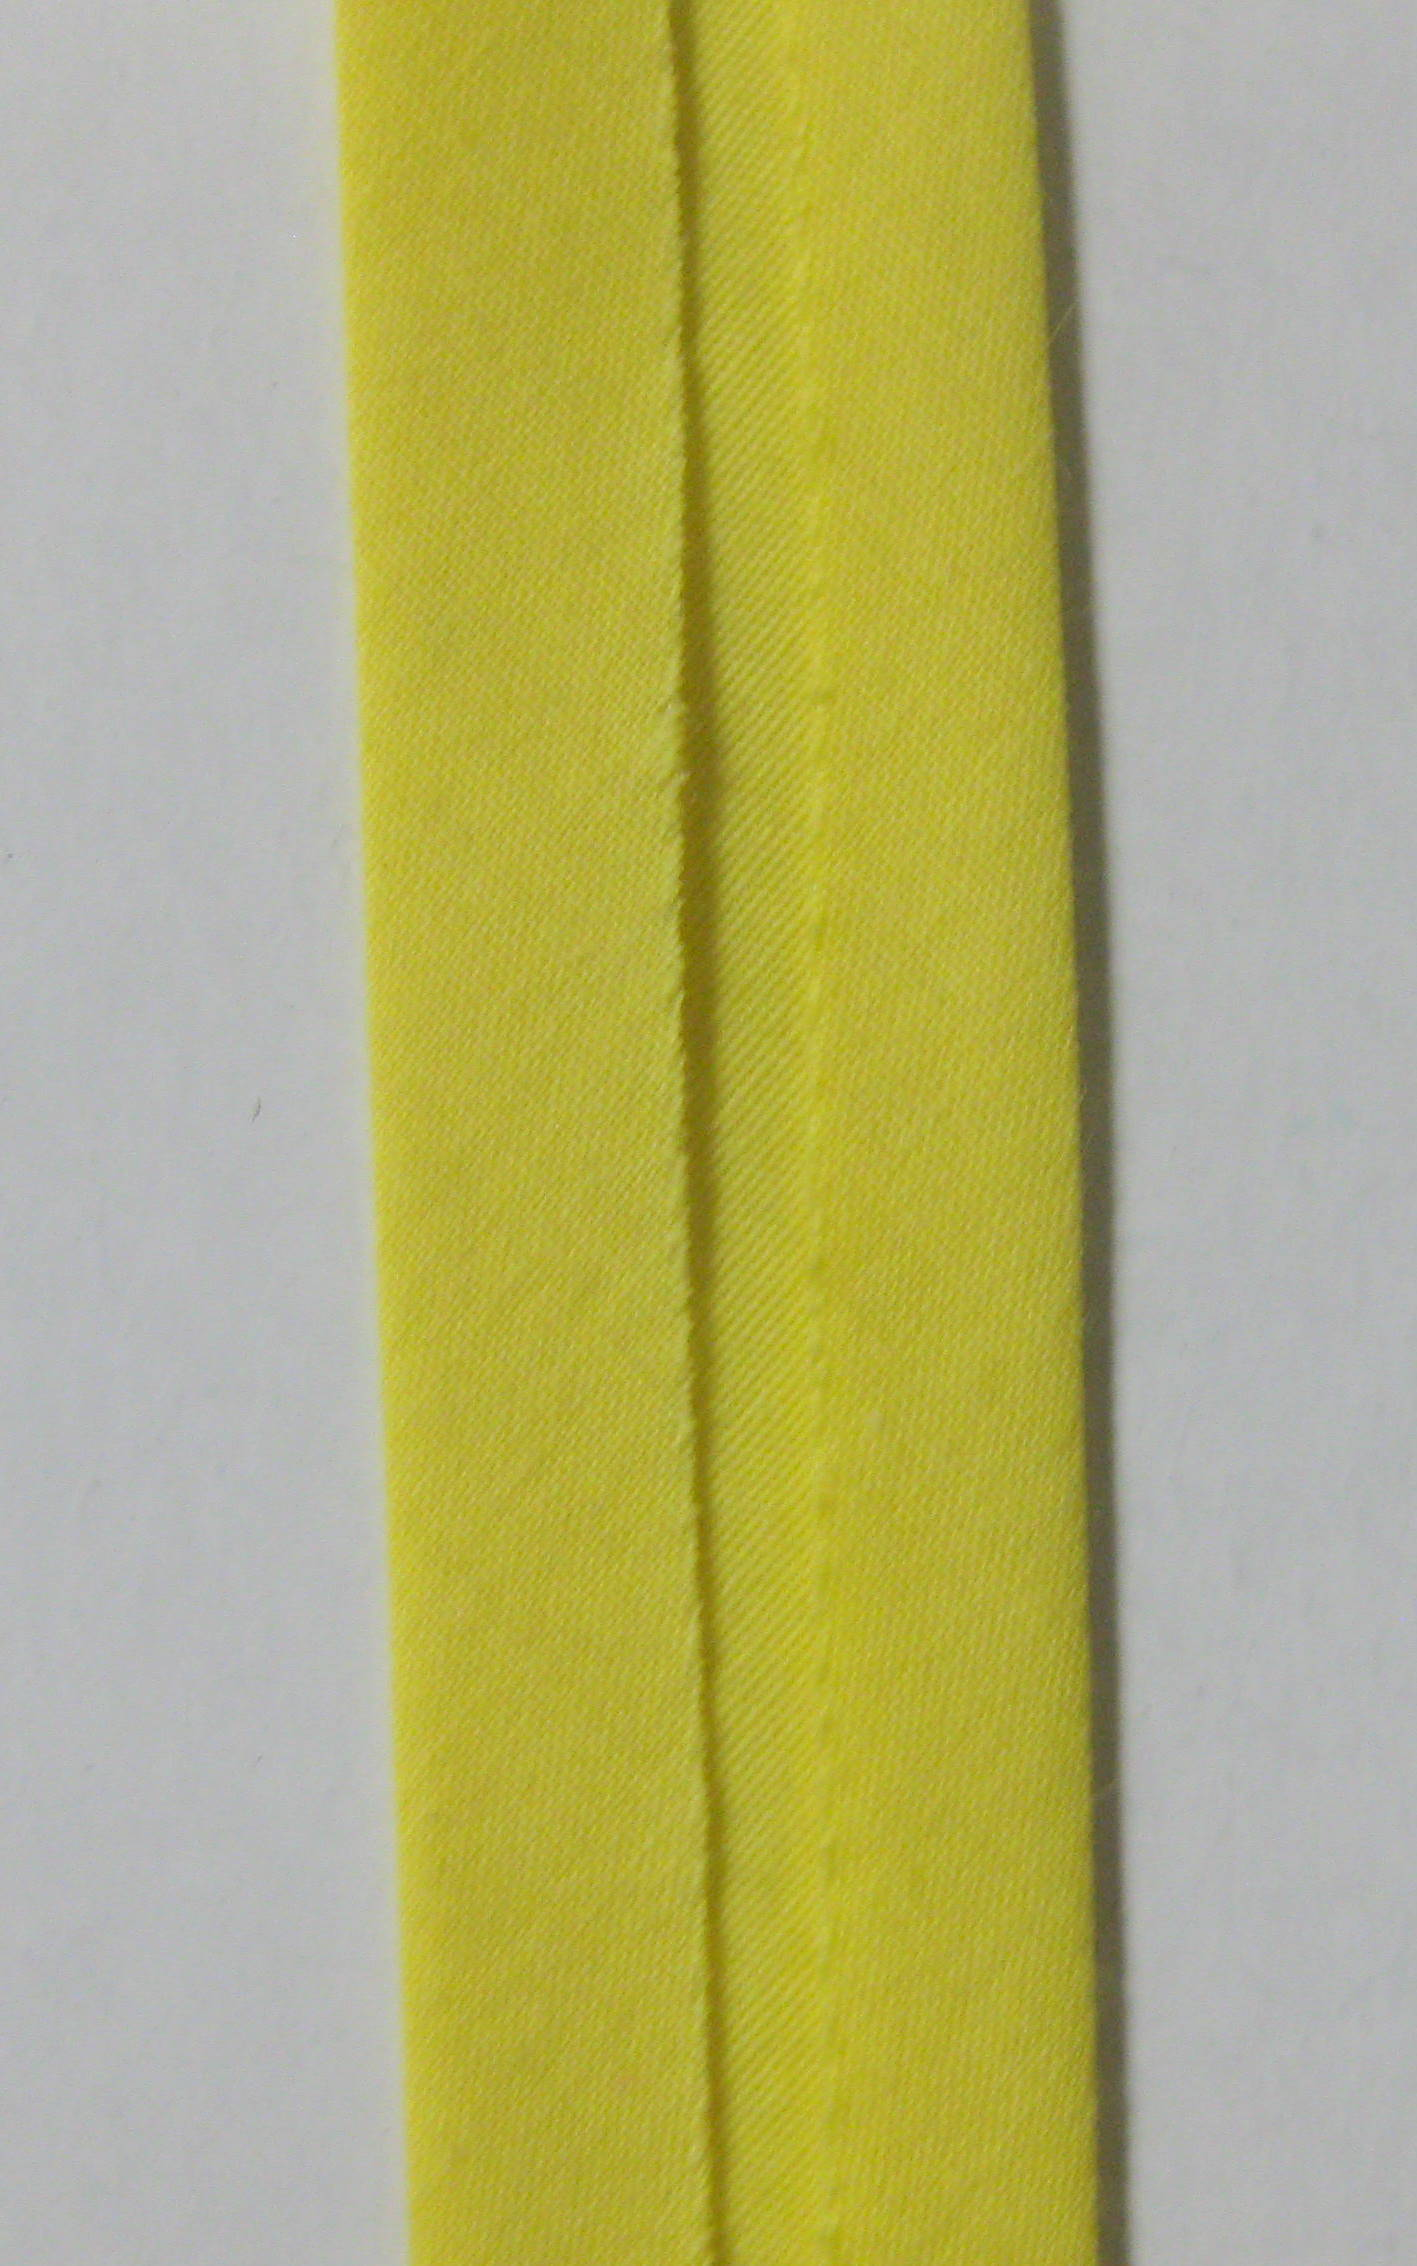 BIAS TAPE YELLOW